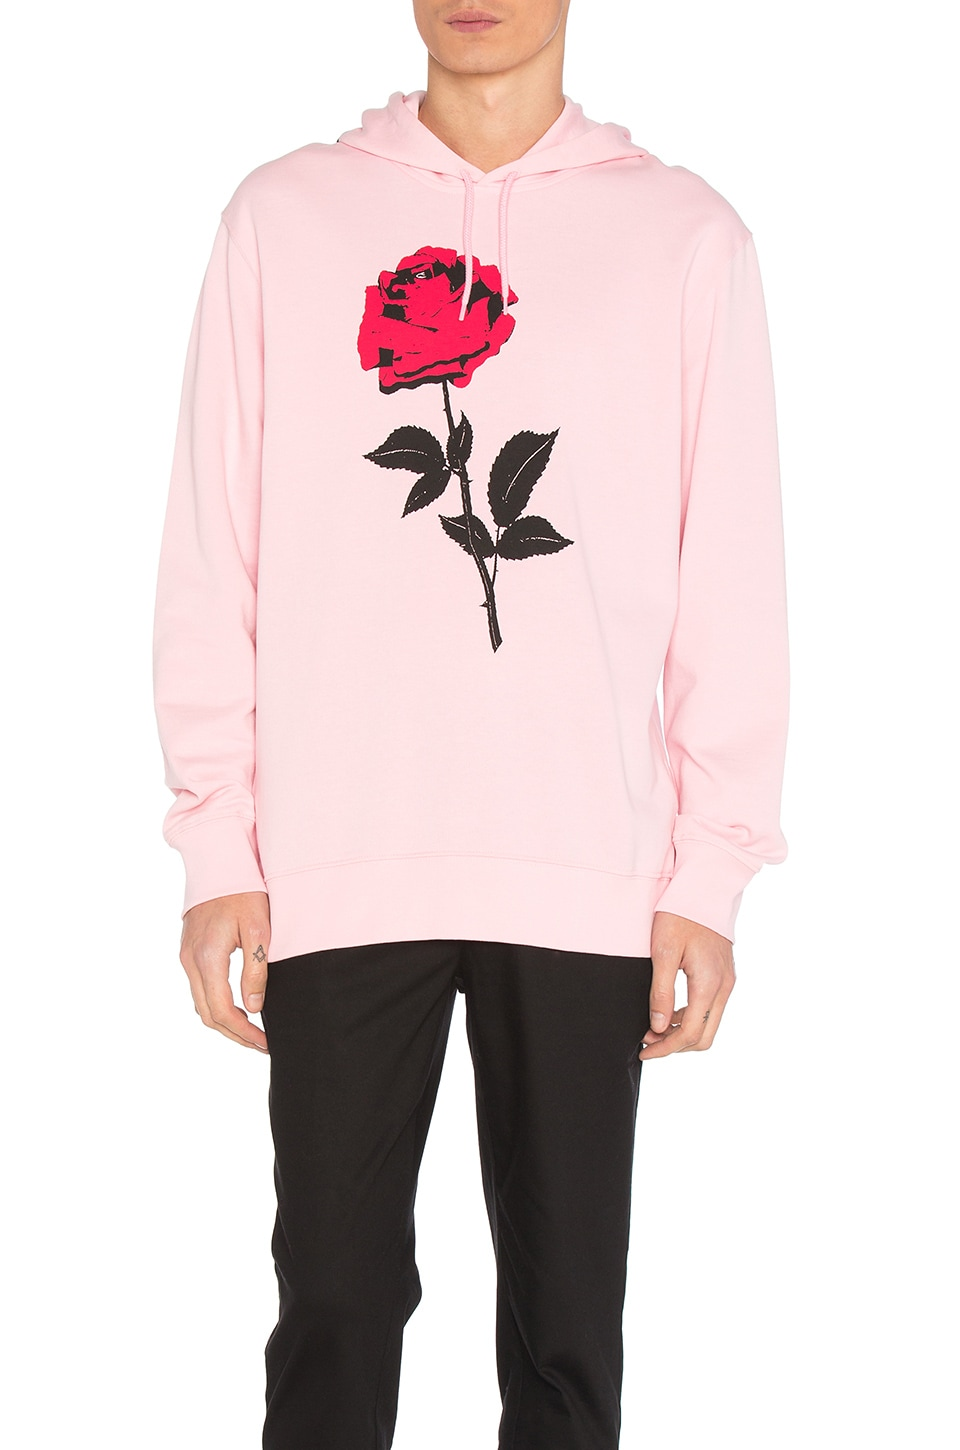 Carhartt WIP Radio Club L.A. Hooded Sweatshirt in Vegas Pink